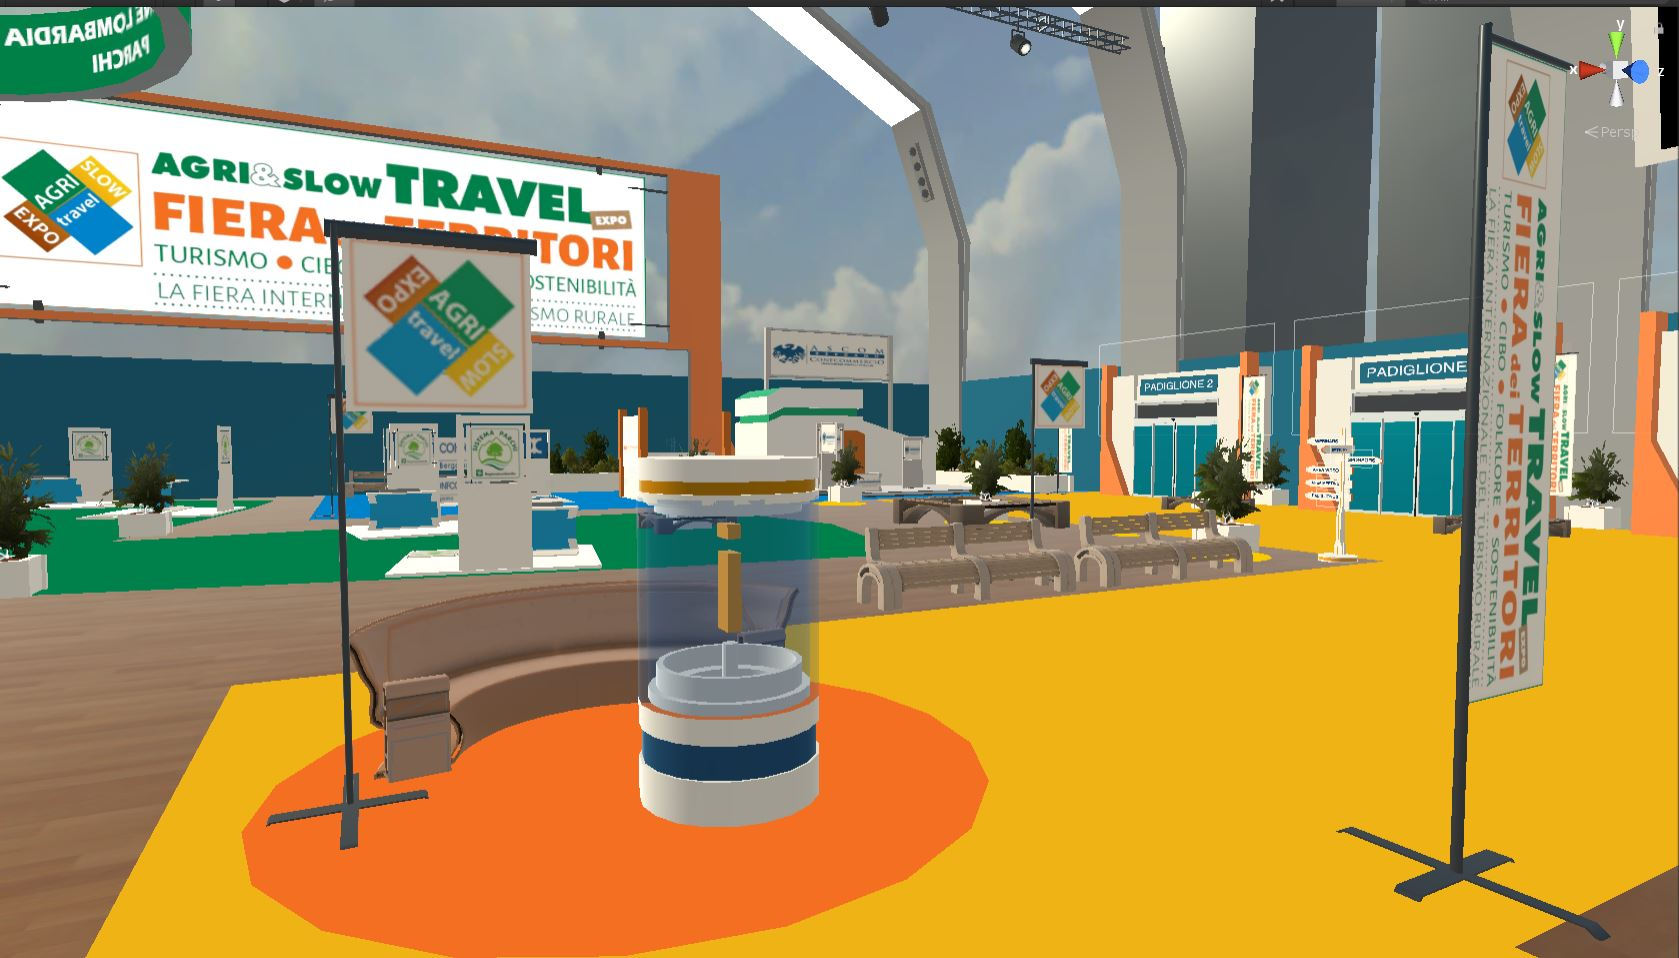 Agri Travel & Slow Travel Expo Virtual - Italian Fashion Events